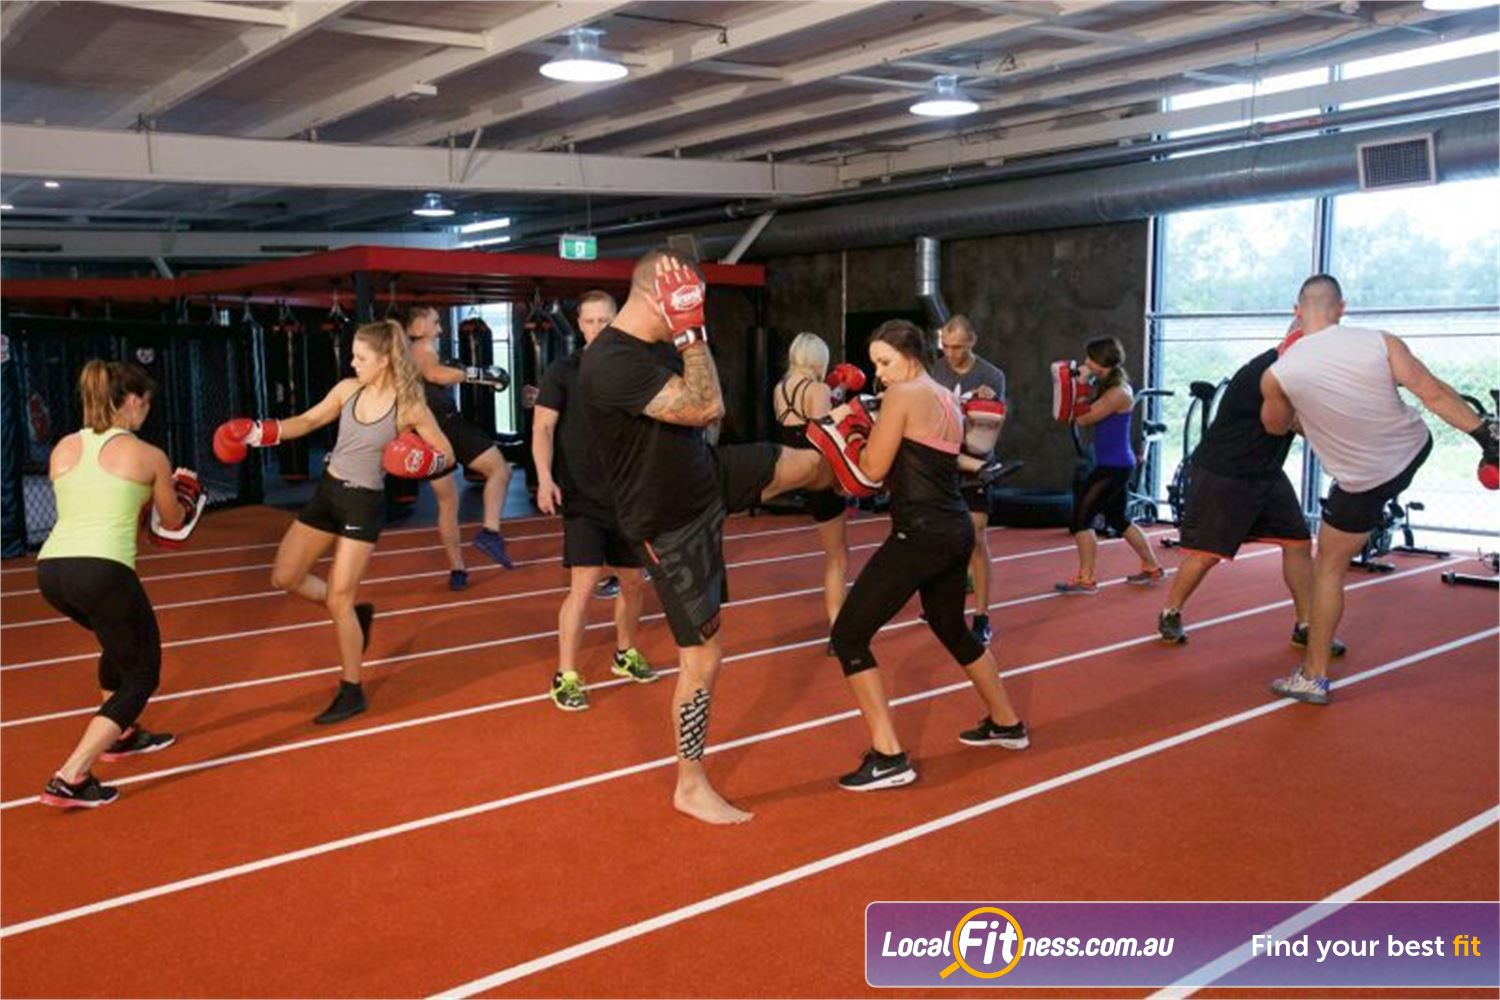 Goodlife Health Clubs Beenleigh Beenleigh Arena Fitness MMA - Coach-led HIIT & Functional training